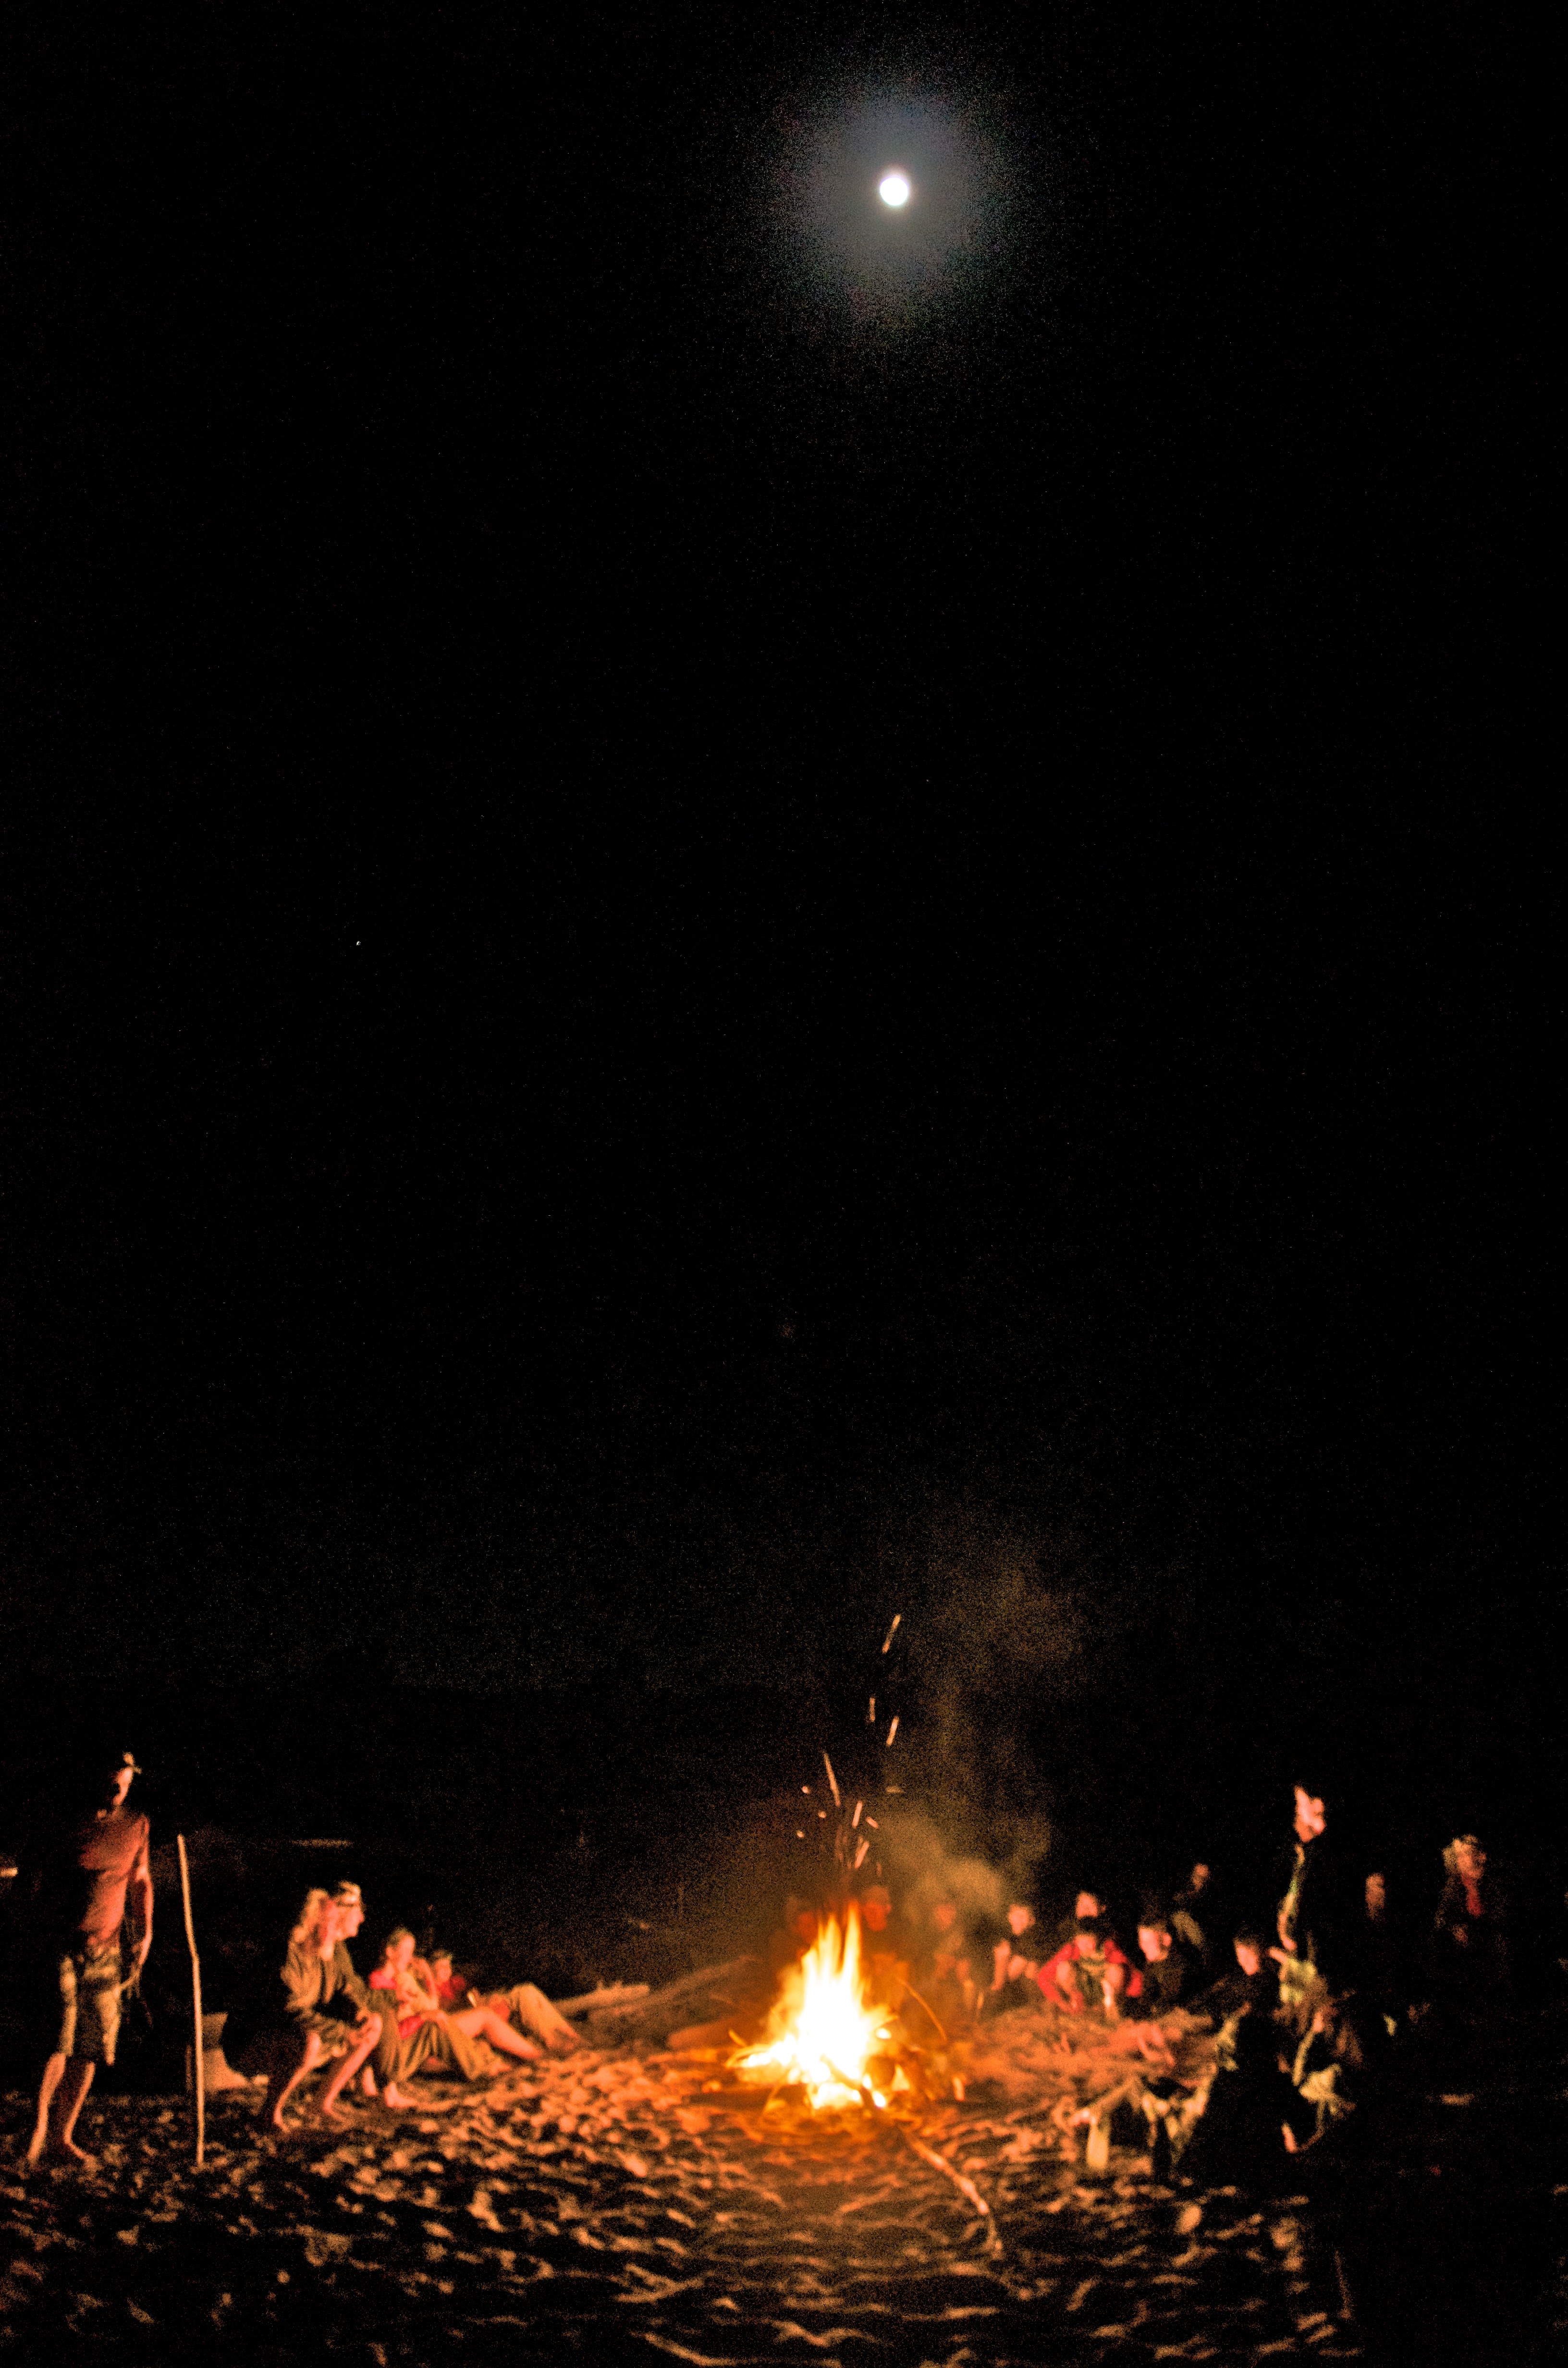 Learning on the river takes many forms. A group sit around a campfire at night, and the moon shines brightly above them. Image courtesy of John Ruskey.